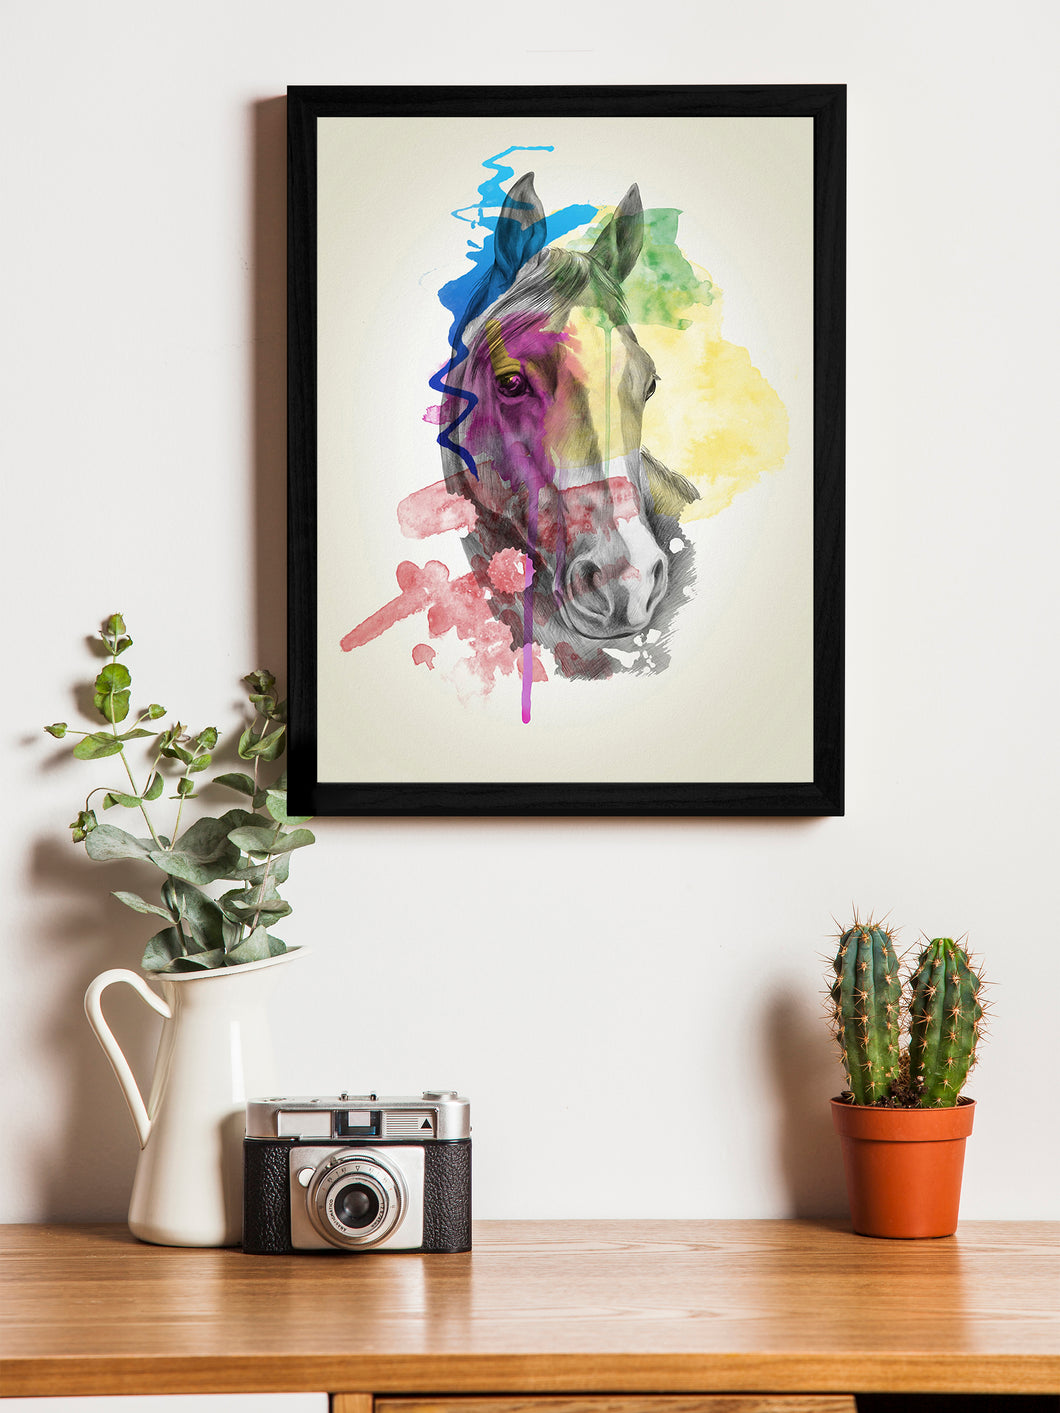 Beautiful Horse Theme Framed Art Print, For Wall Decor Size - 13.5 x 17.5 Inch